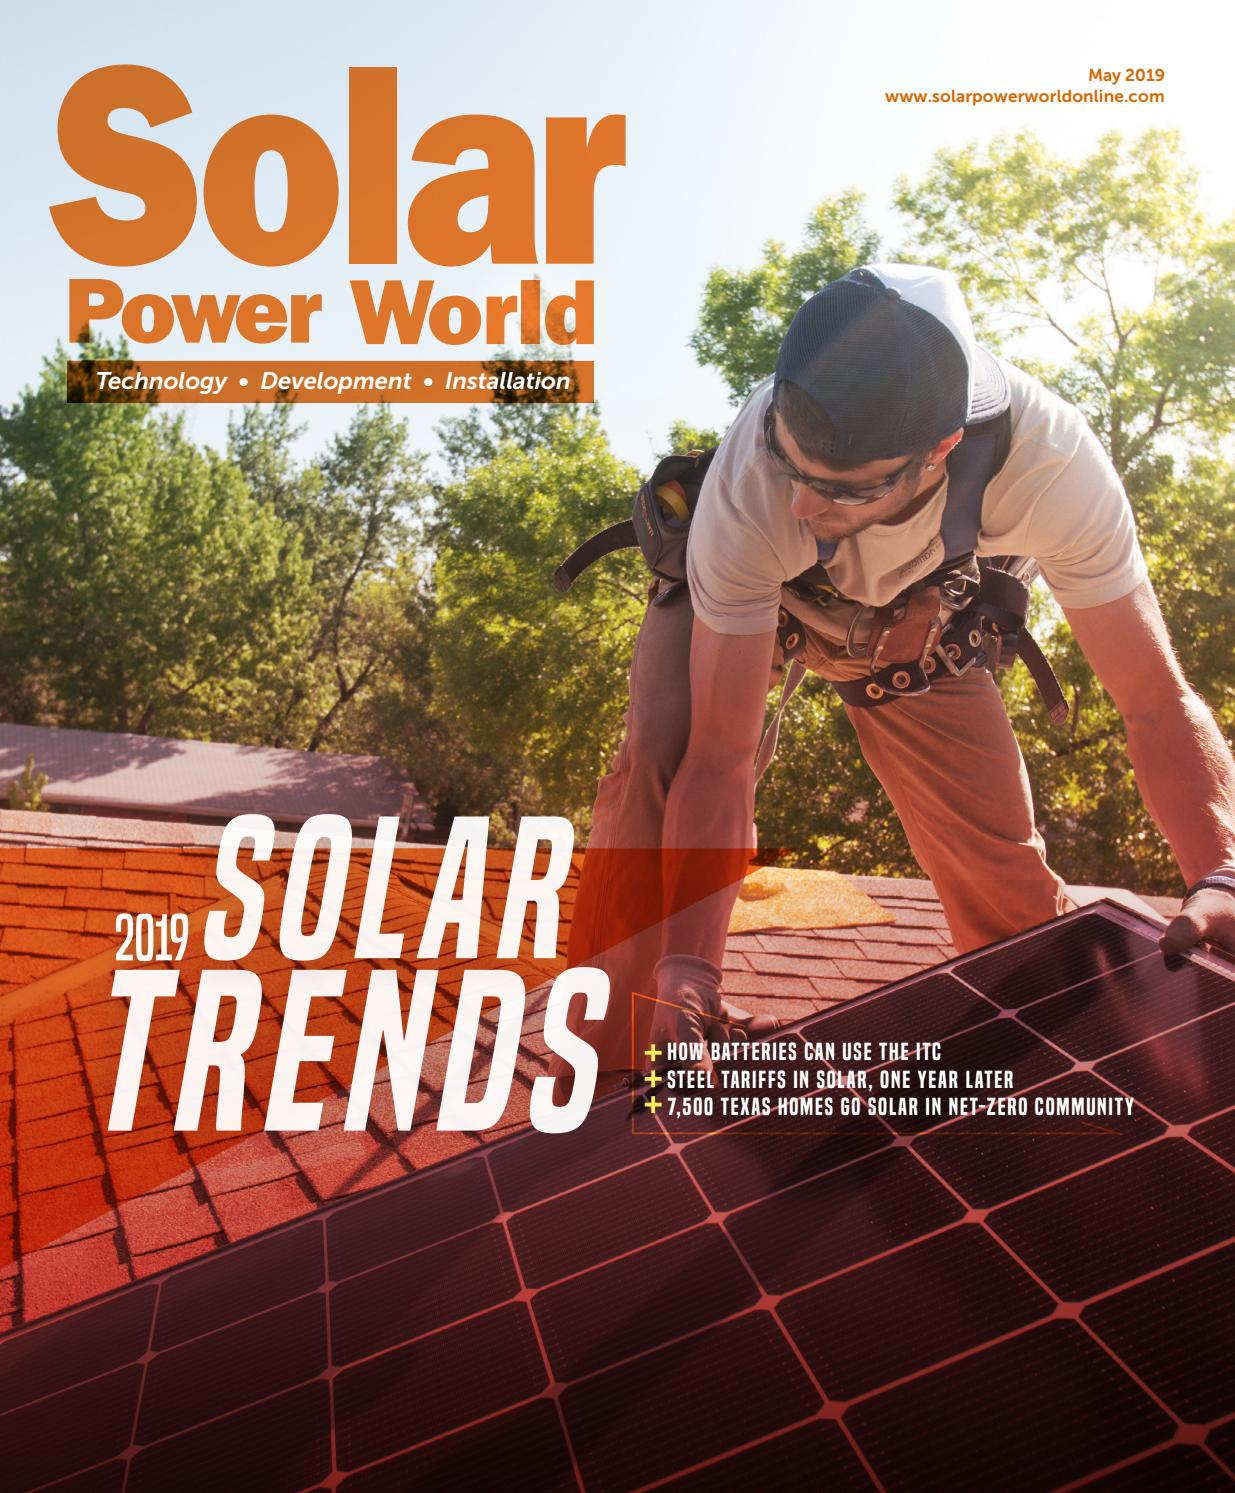 Solar Power World May 2019 by WTWH Media LLC - issuu